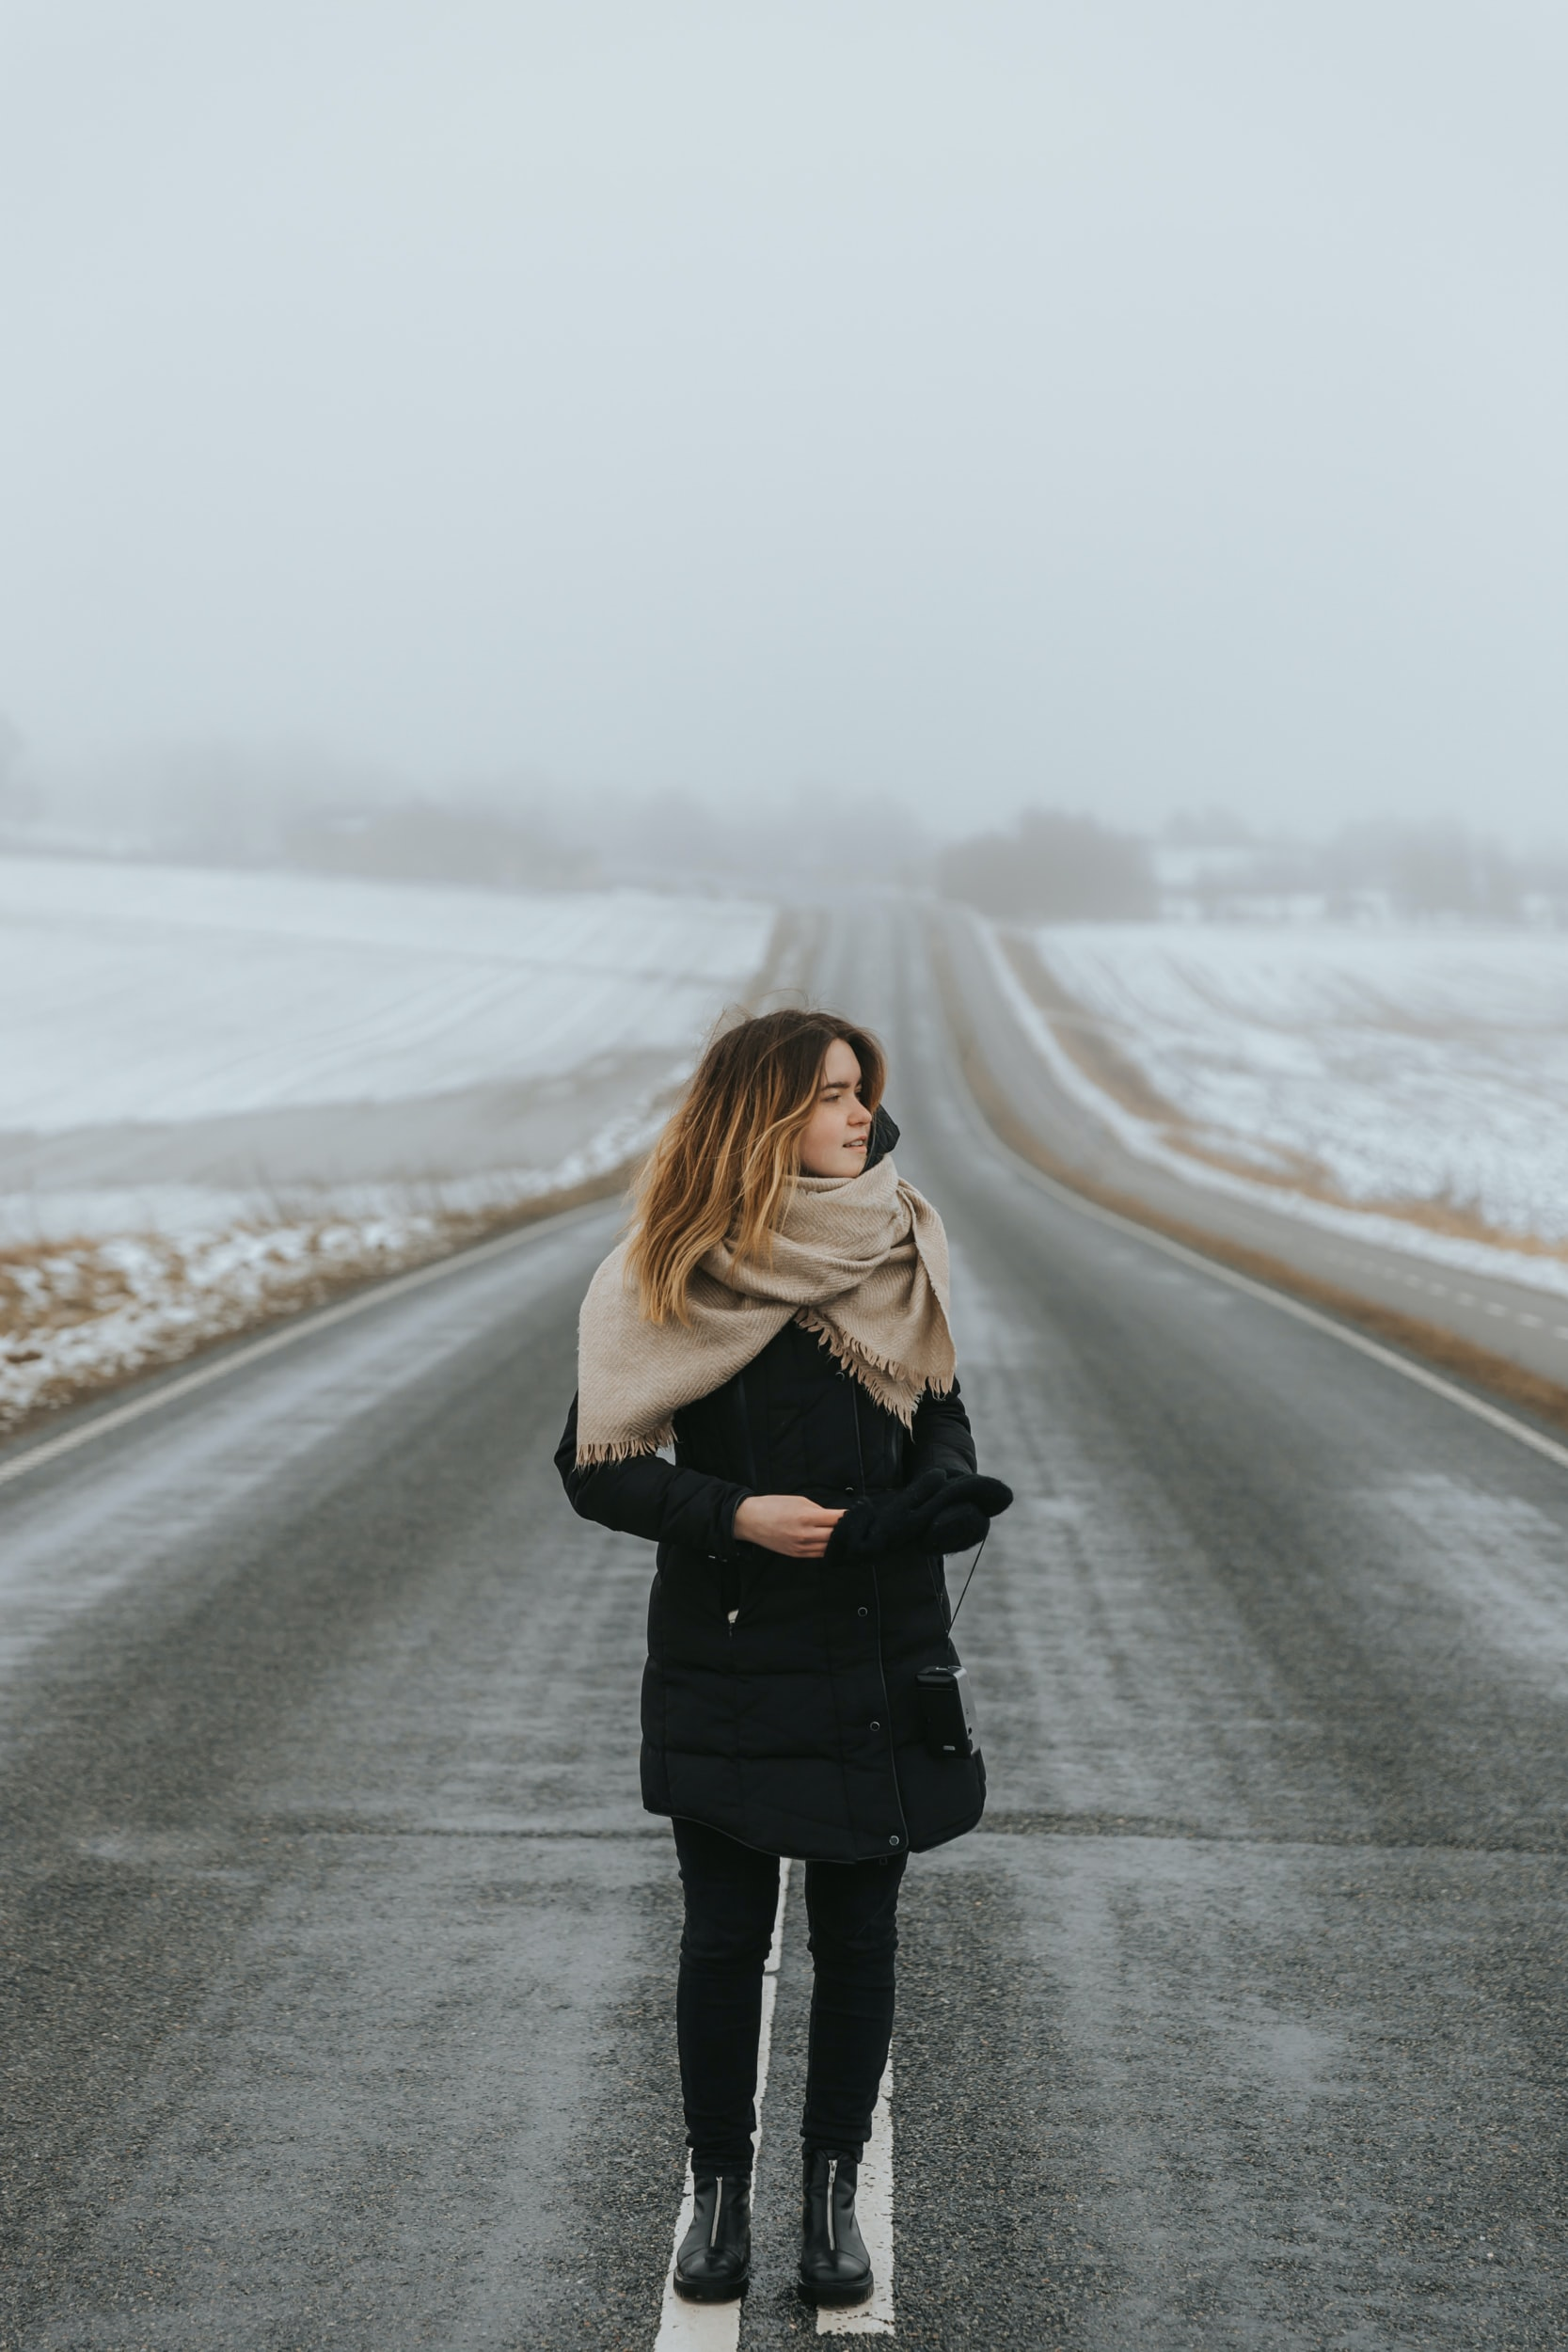 woman standing at road